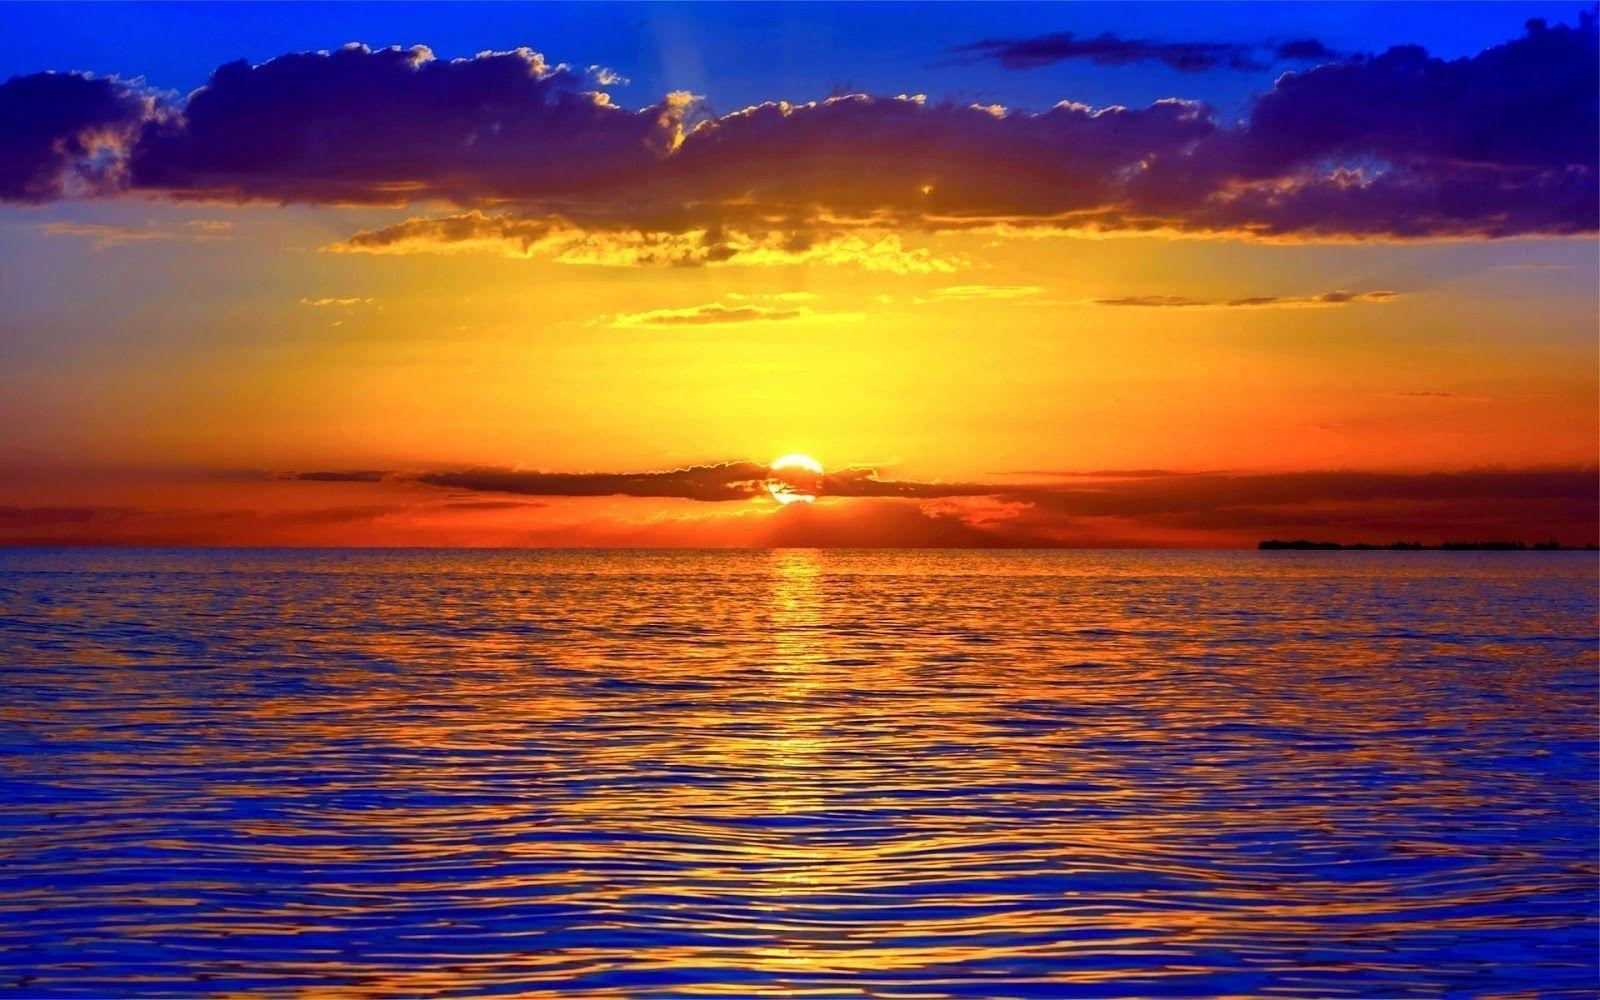 ocean sunset wallpapers - wallpaper cave